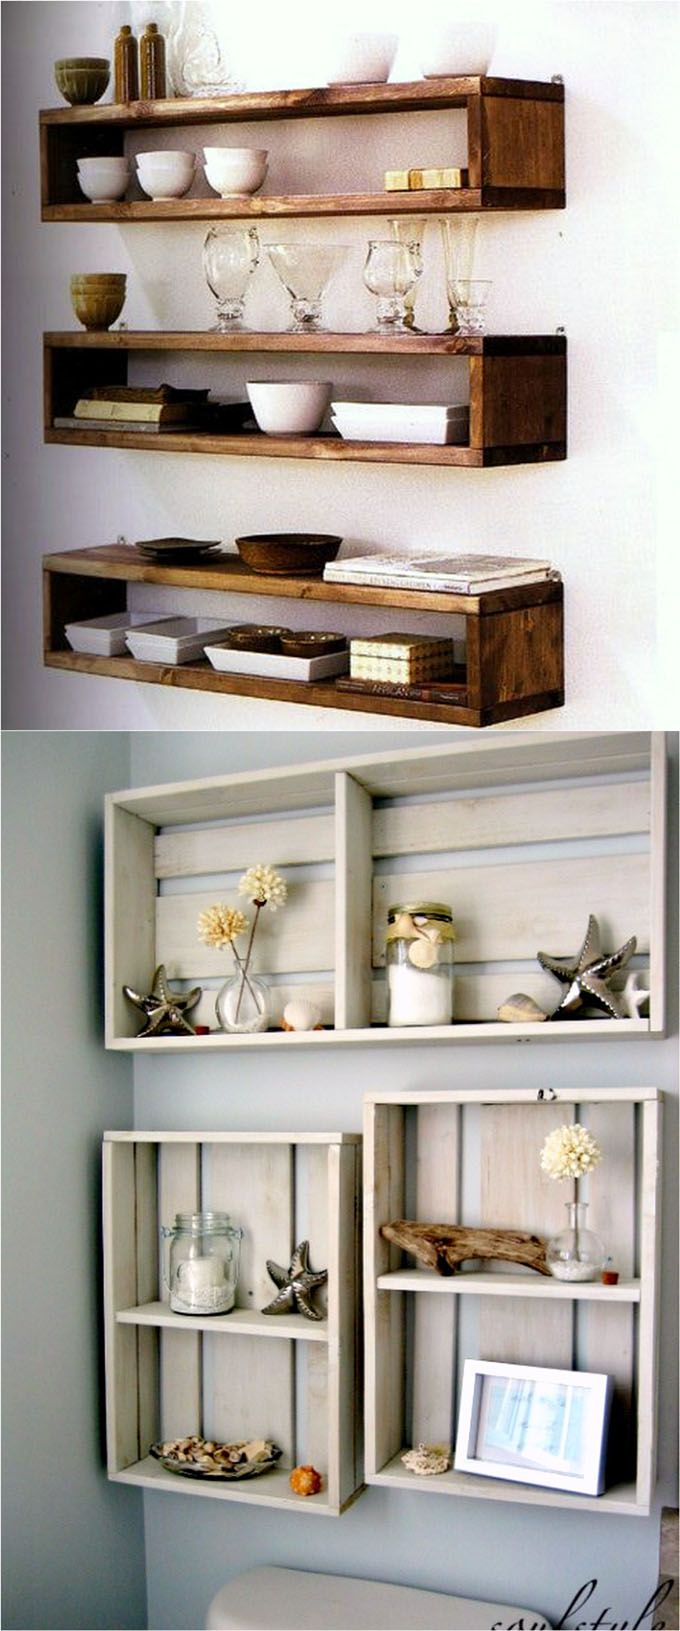 easy and stylish diy floating shelves wall wood designer tutorials building beautiful check out all the gorgeous brackets supports finishes design inspirations ikea lack shelving